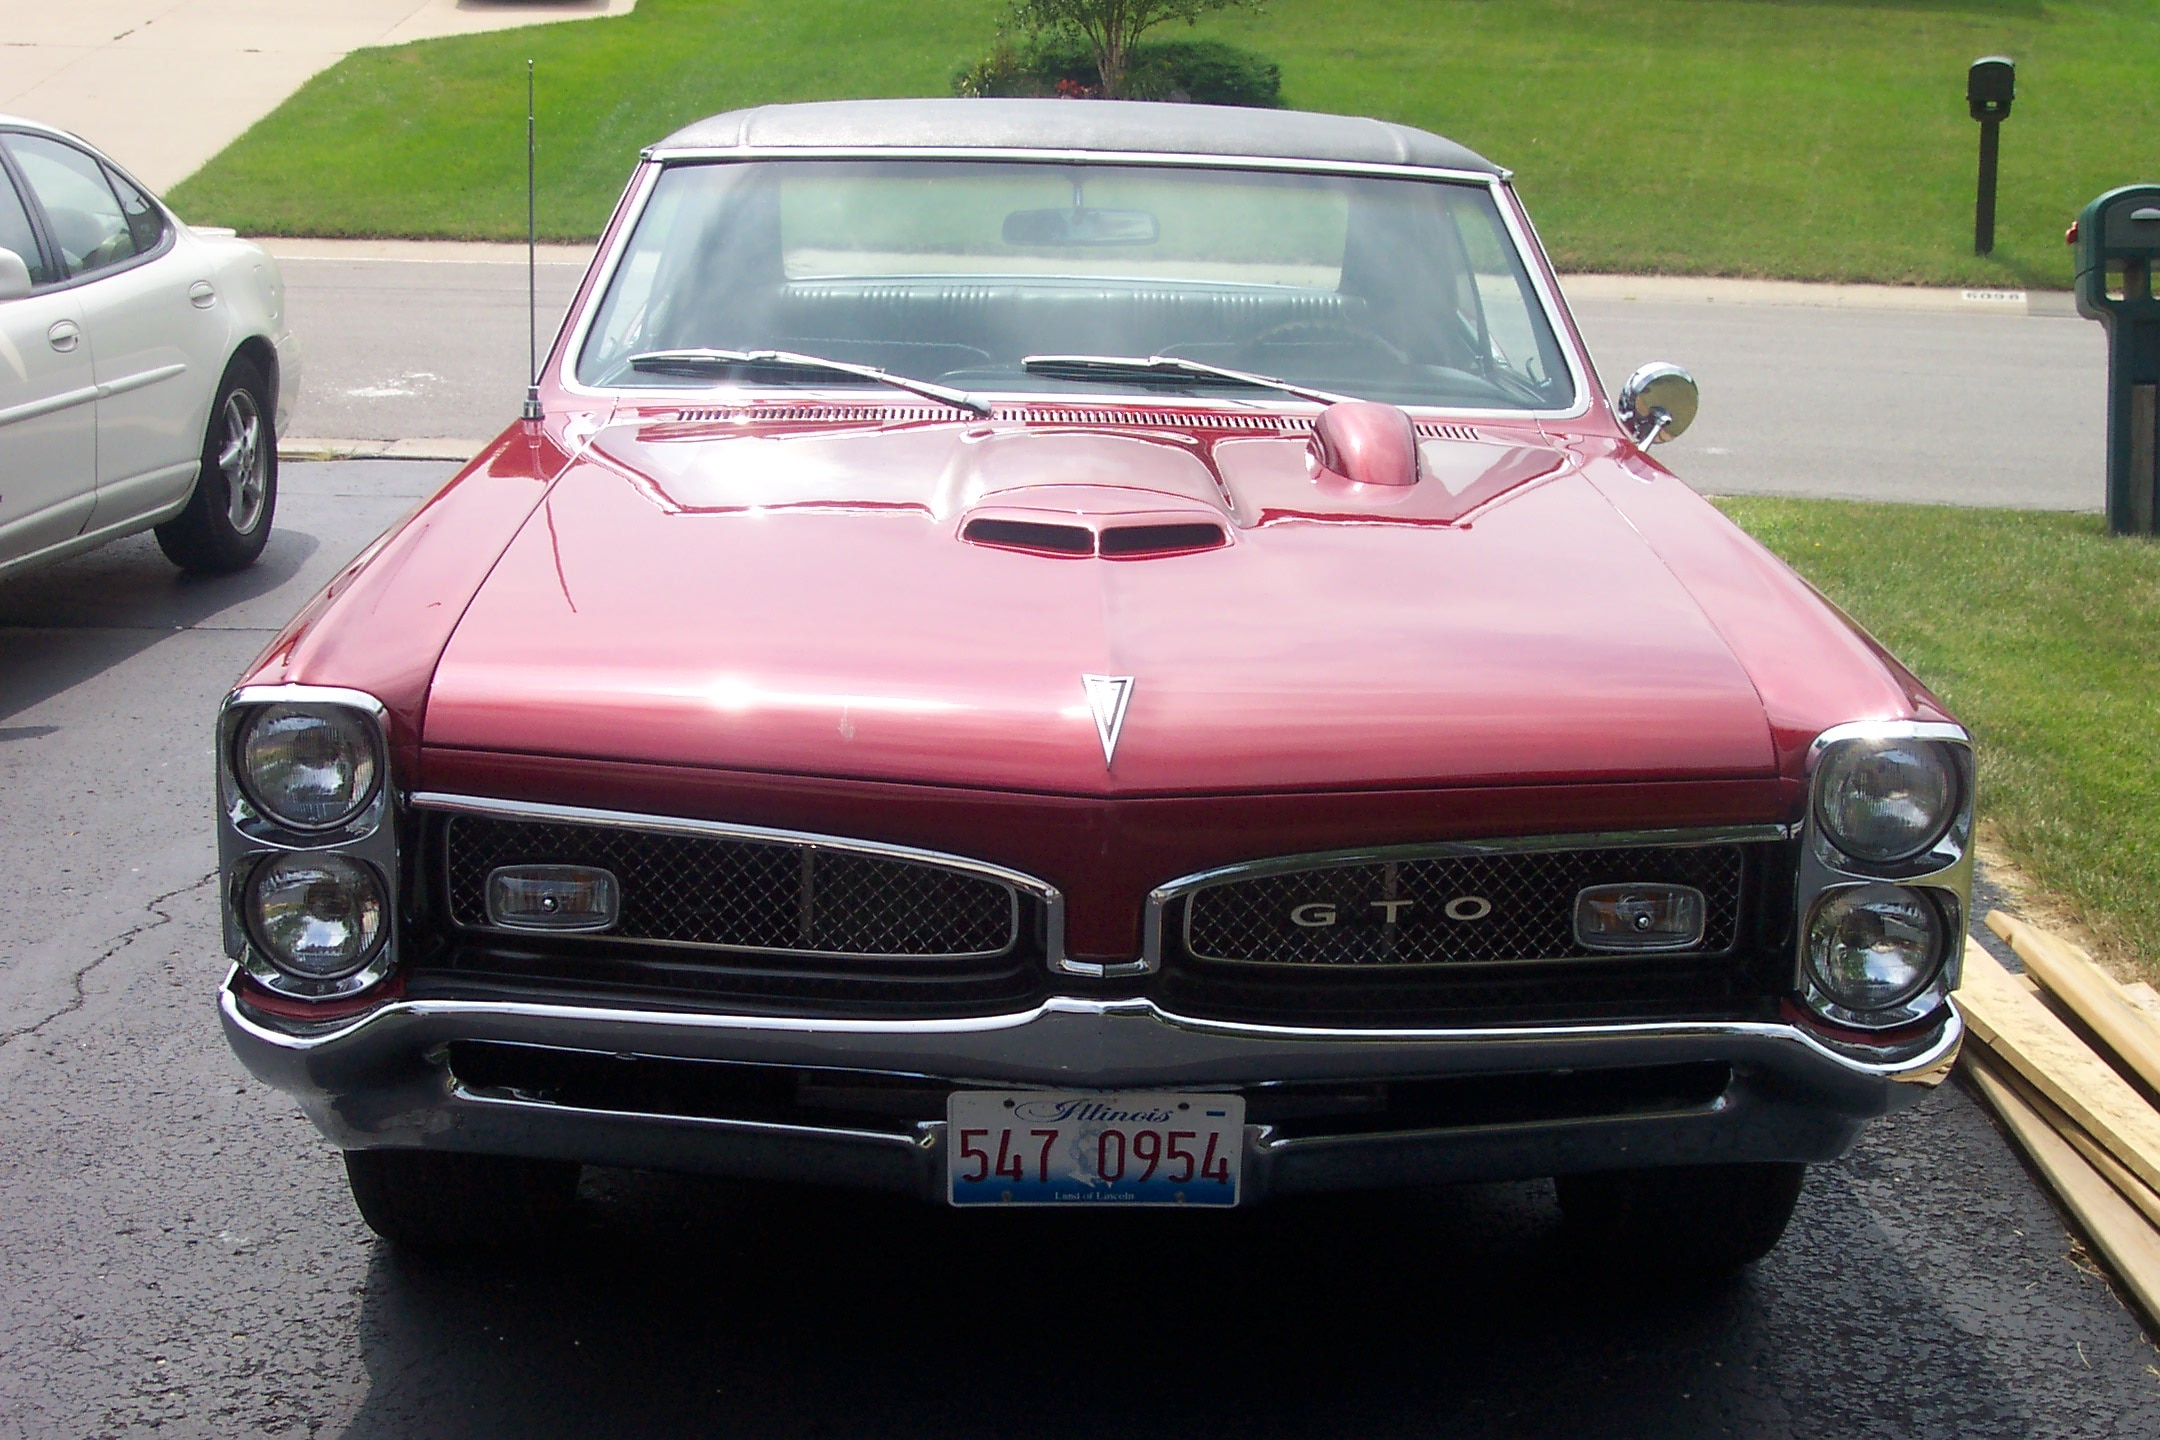 Dating game host 1970 gto